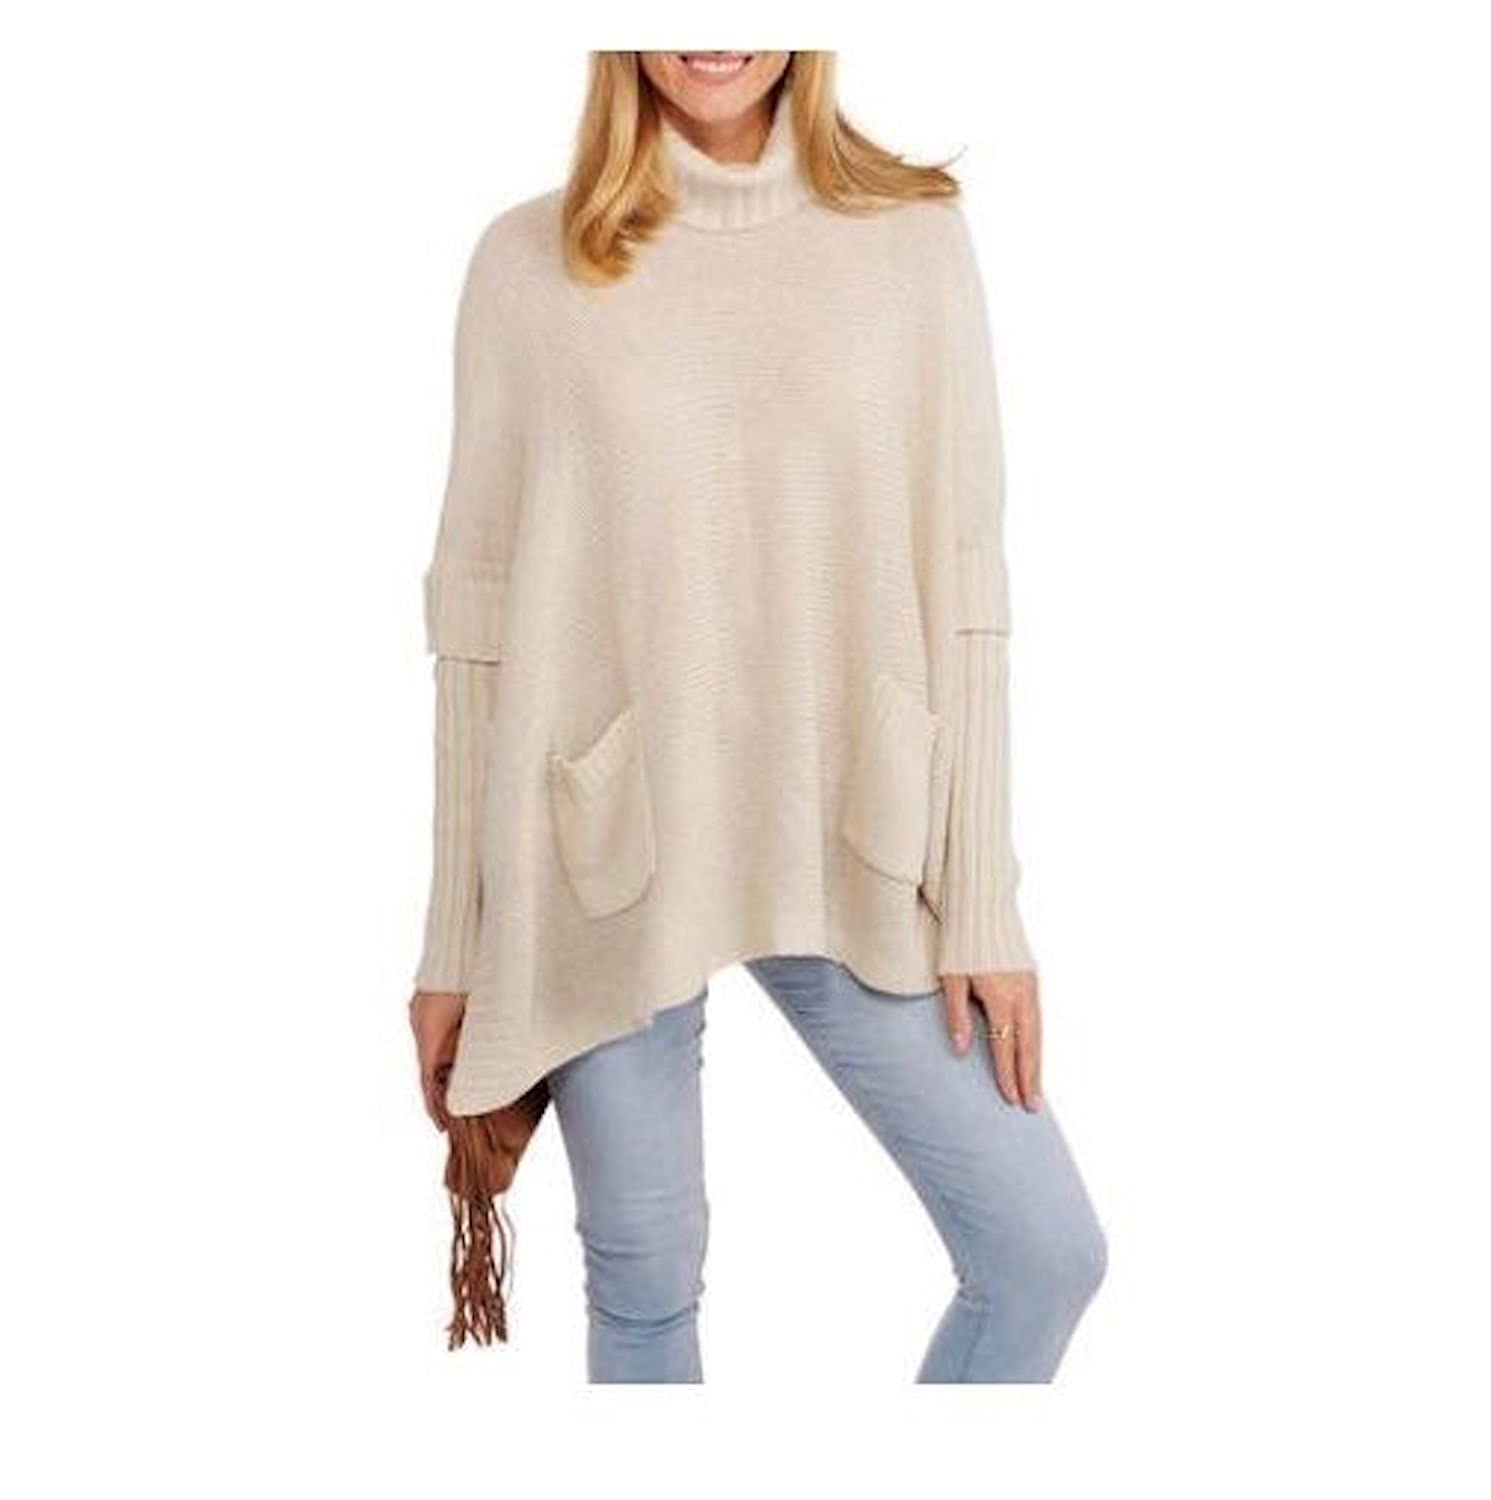 George Women's Turtle Neck Sleeved Poncho, Ivory, Small